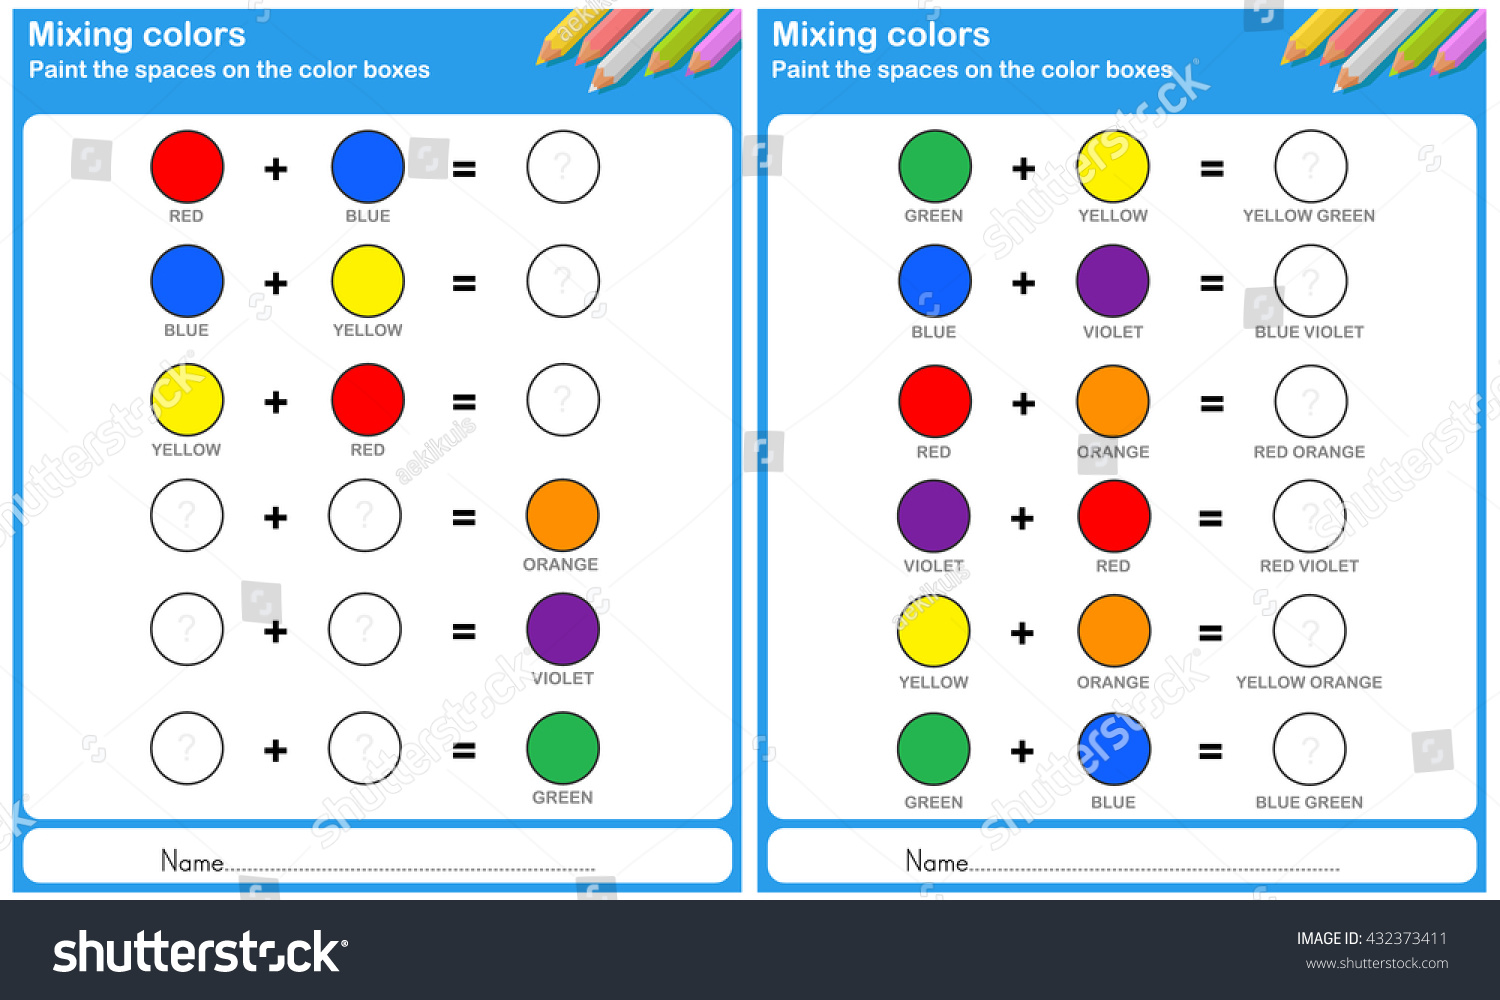 Mixing Color Paint Space On Wheel 432373411 on How To Teach English For Primary School S